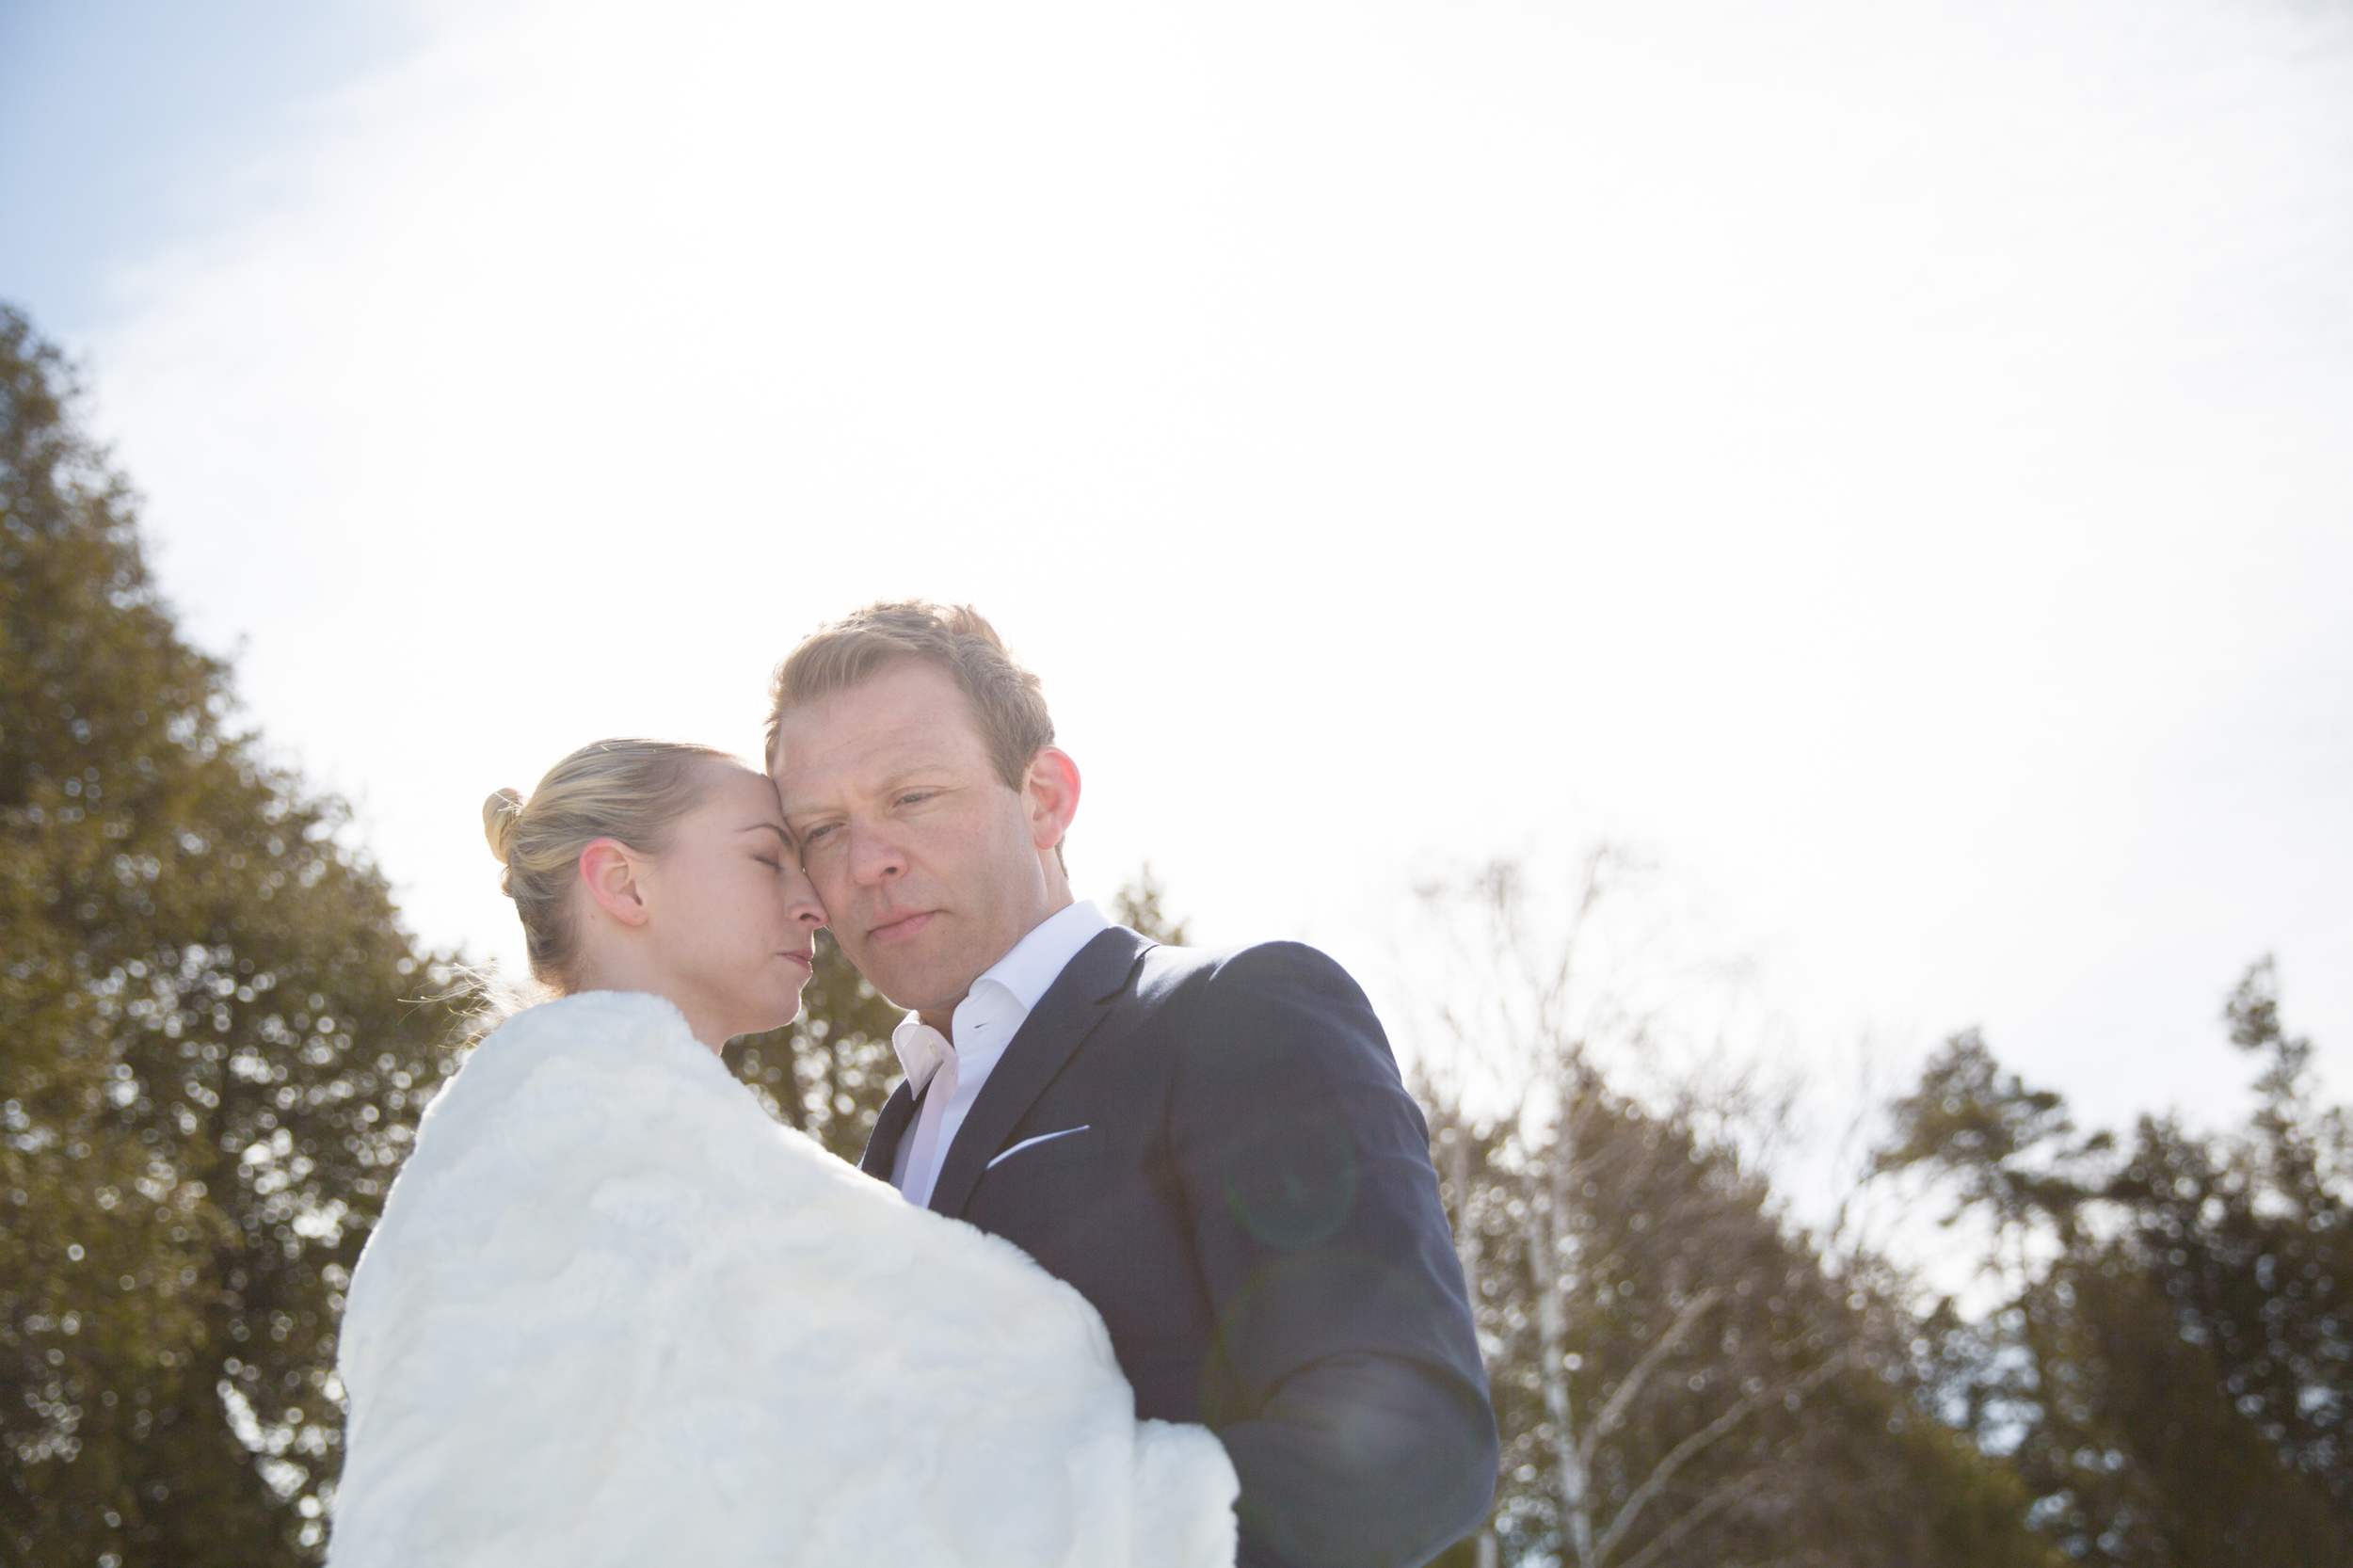 Lauren&Matthew_Engage_Dukat Photos-1104.jpg